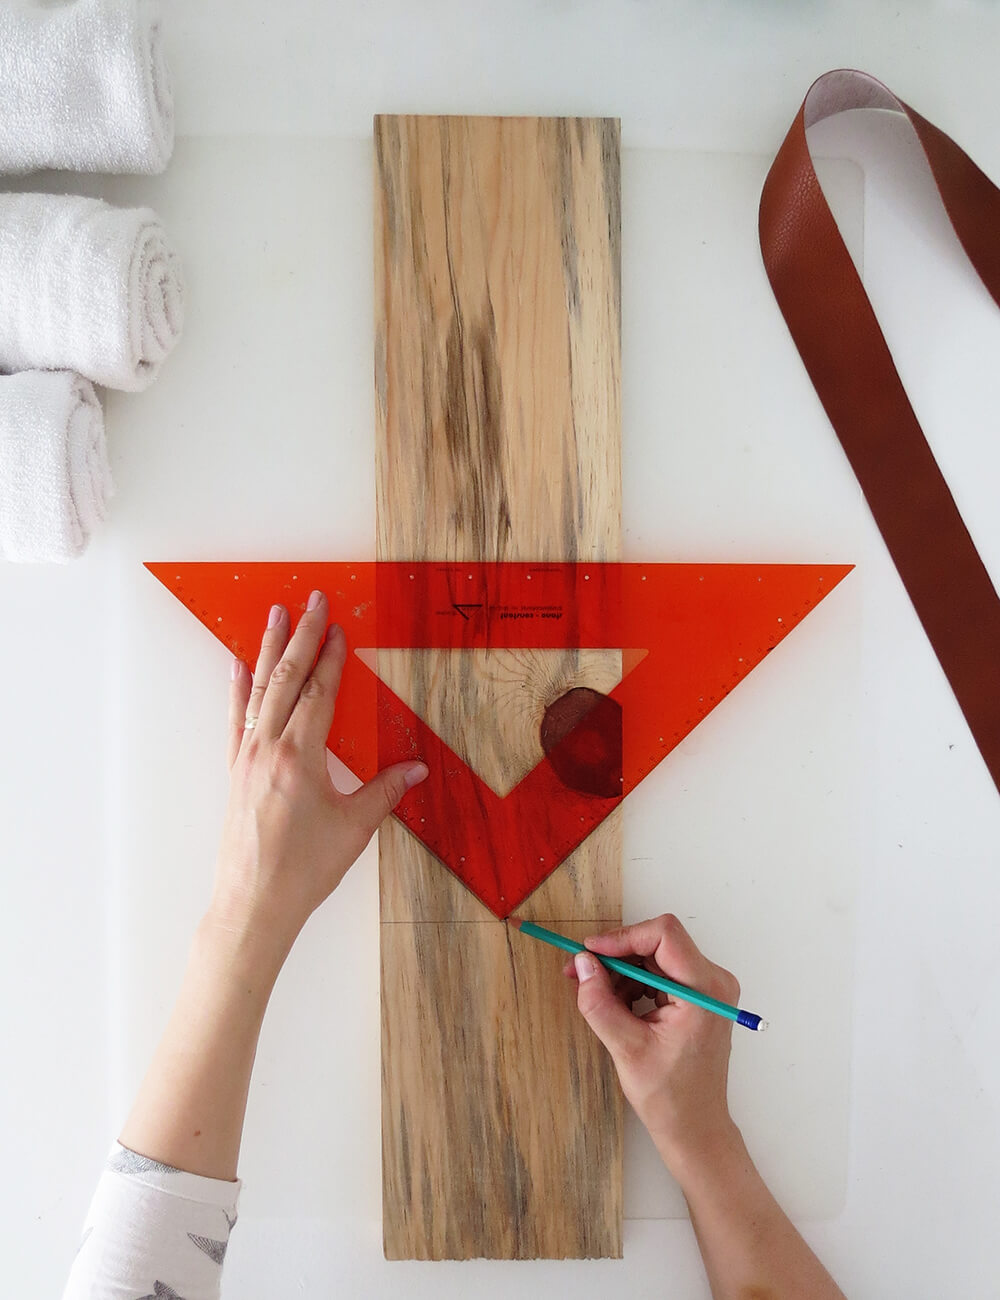 Use a triangle ruler to mark on the wood